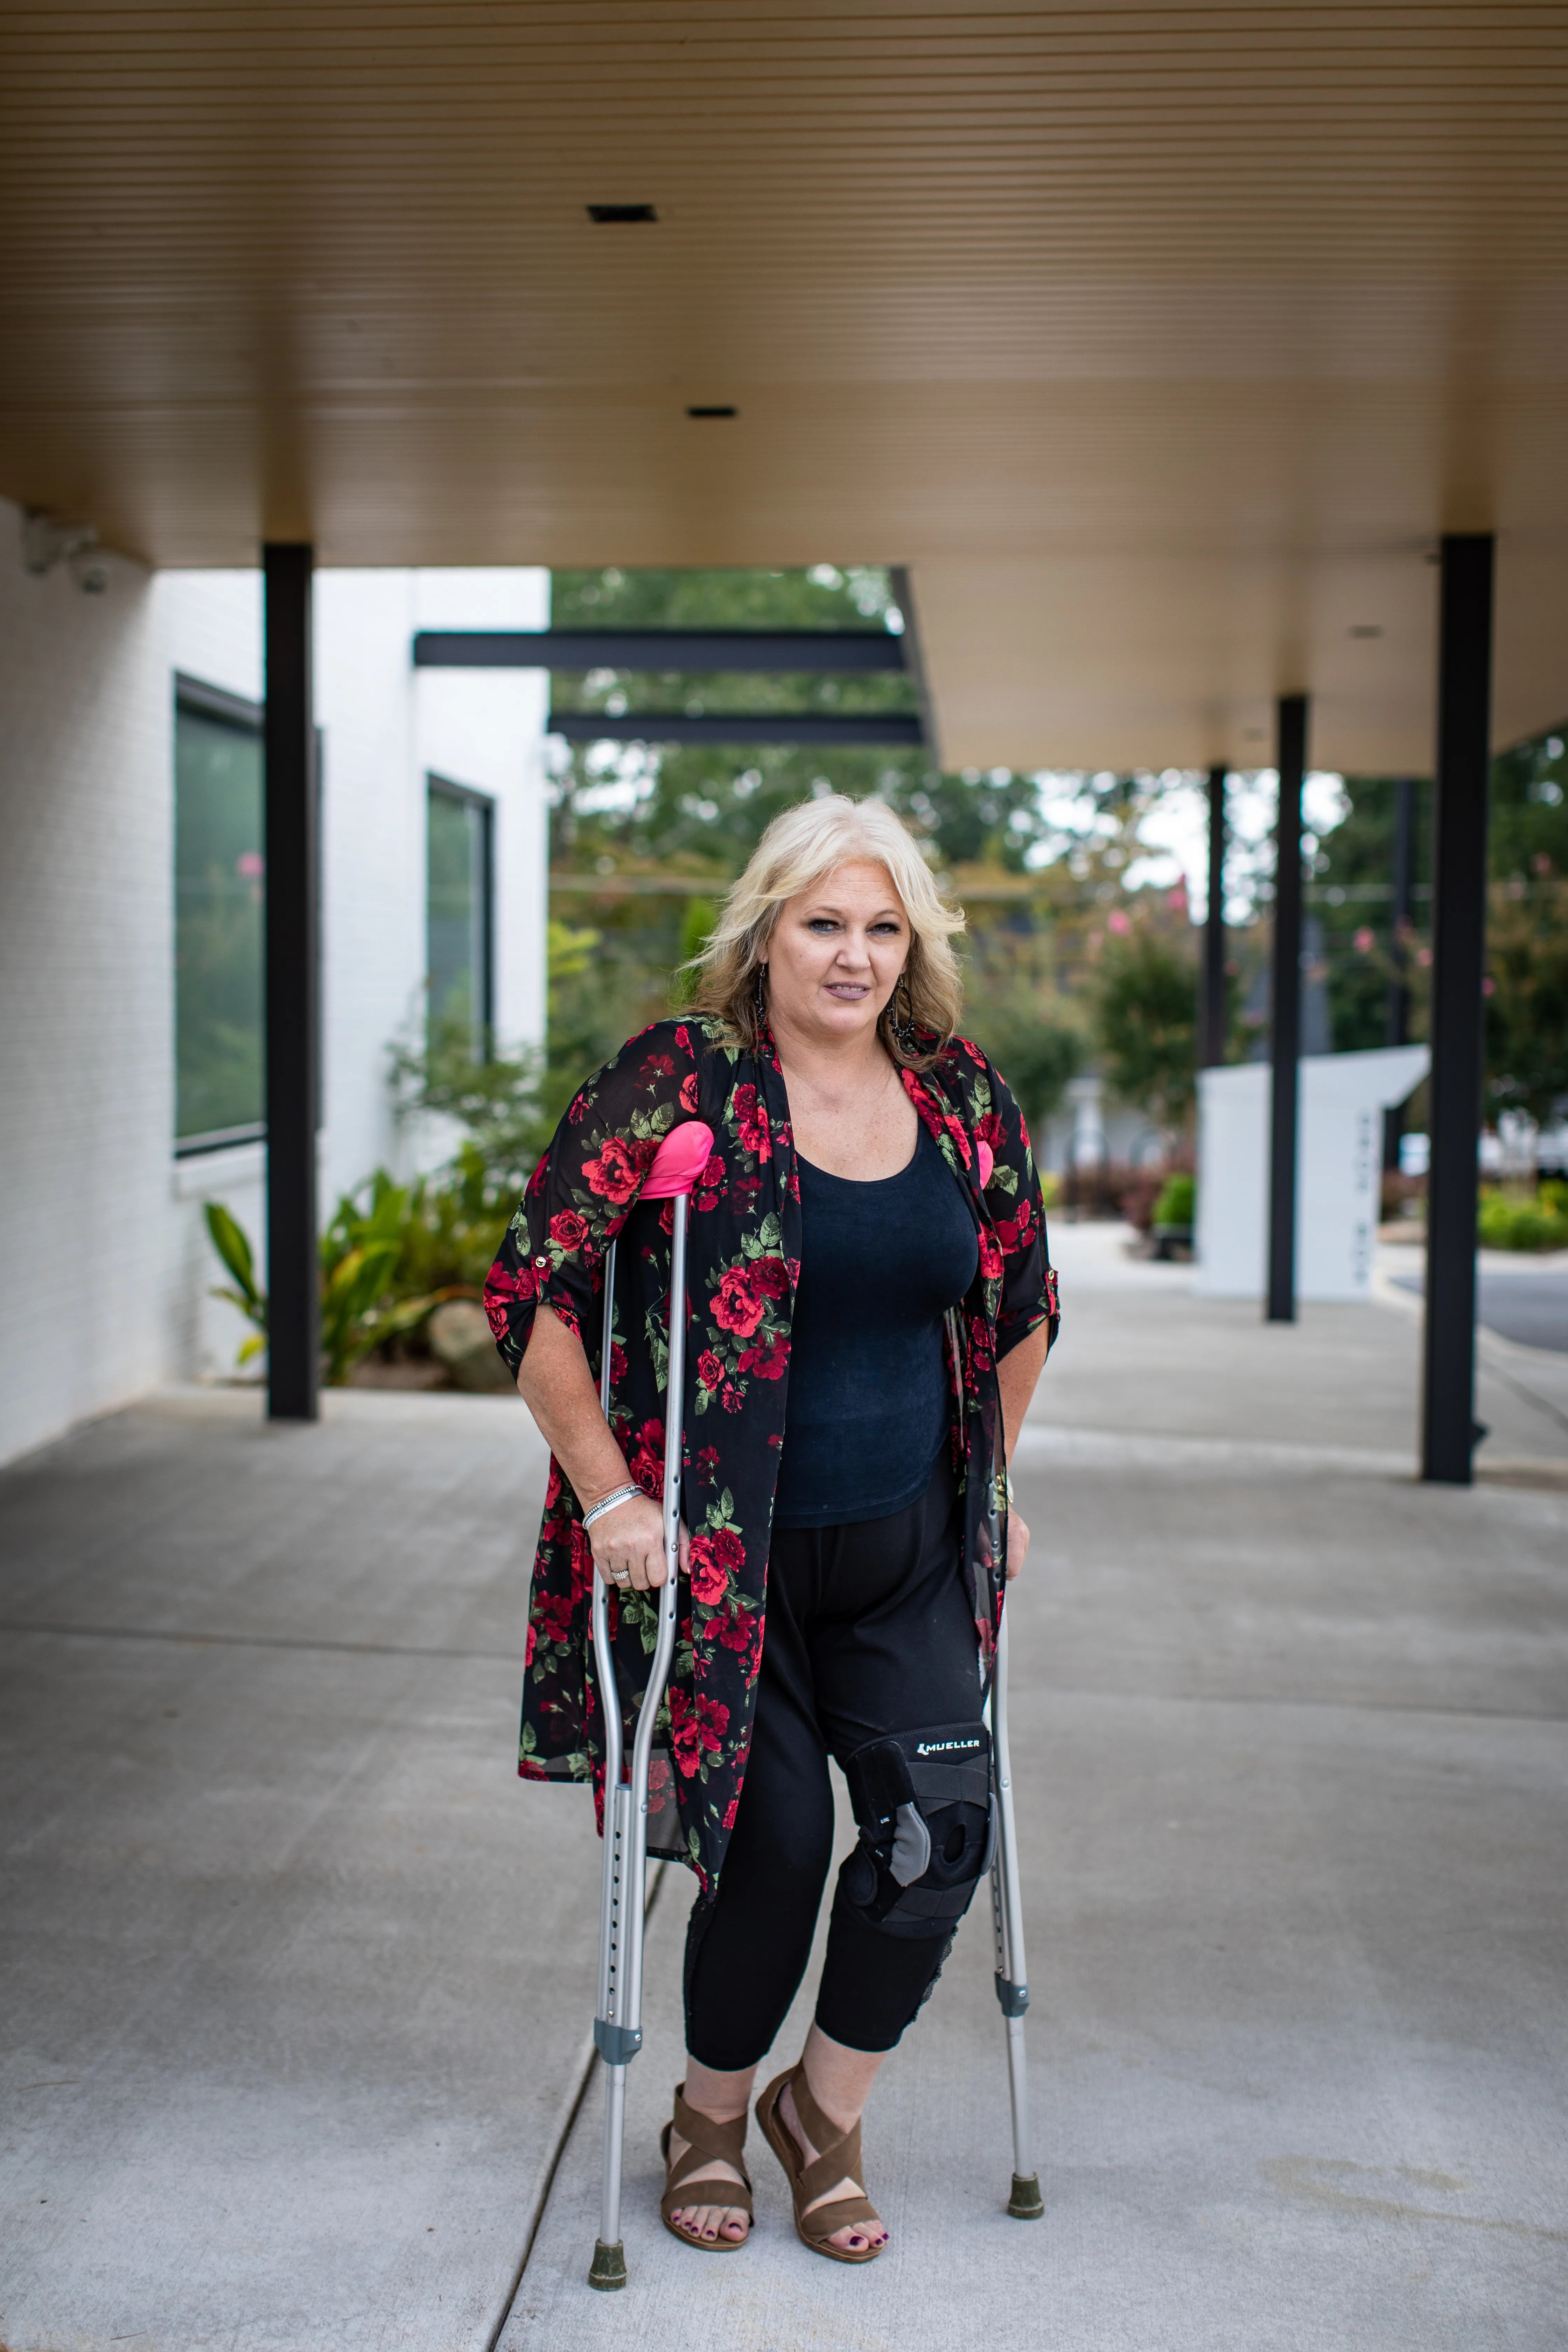 Lynette Christmas was assaulted by a police officer in Georgia.  The officer was convicted, but the service that employed him was protected from civil harm by qualified immunity.